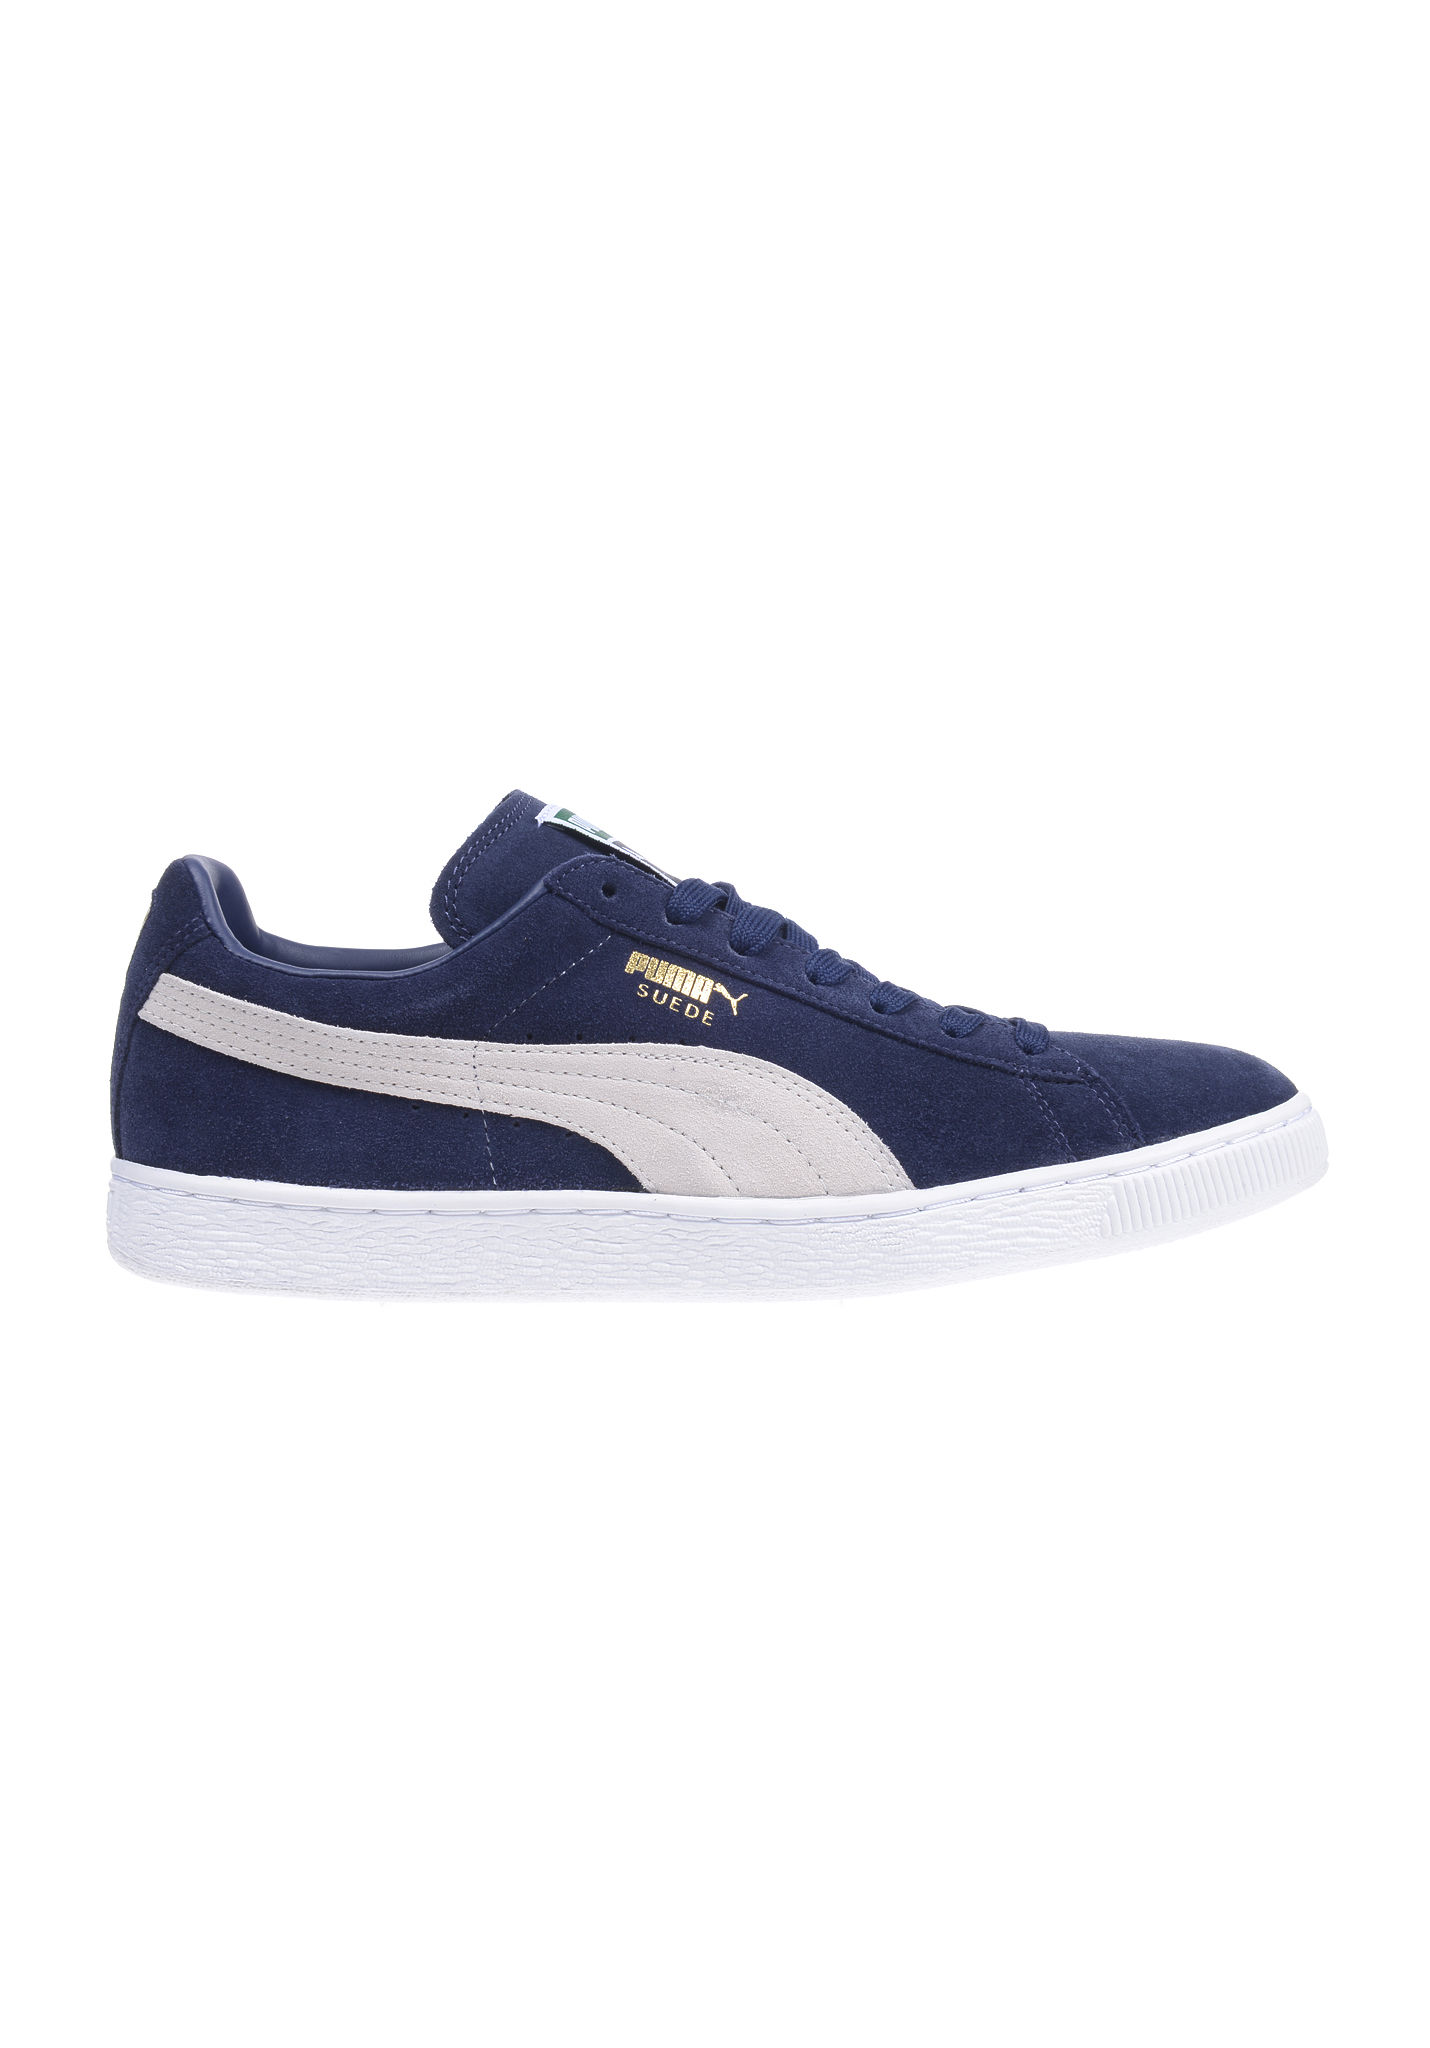 low priced 48500 03de0 Puma Suede Classic + - Sneakers for Men - Blue